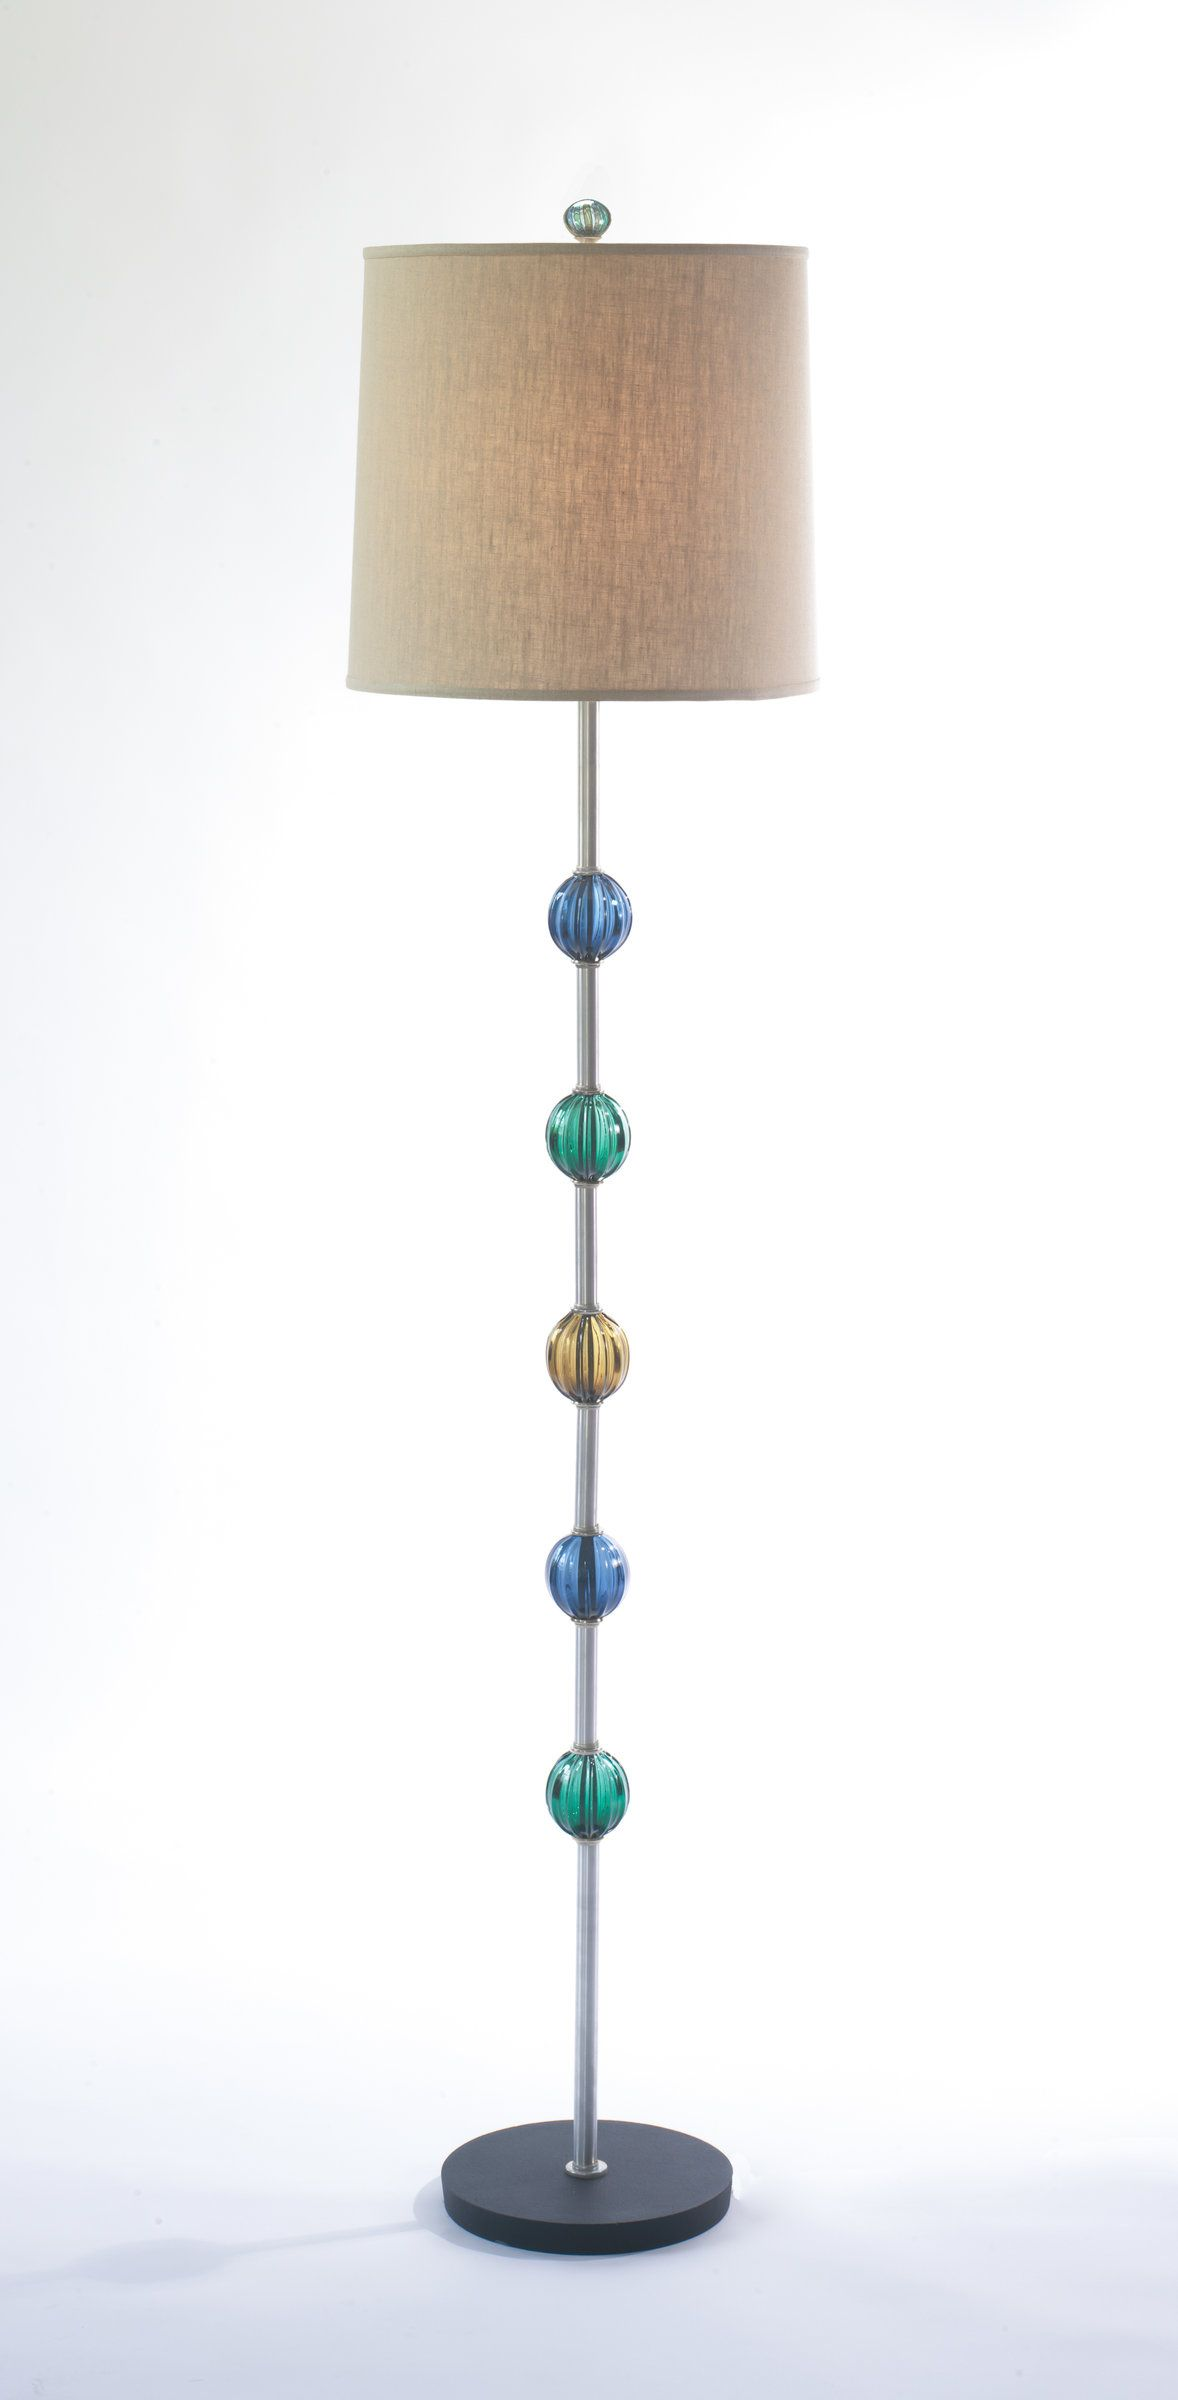 Globe Floor Lamp By Tracy Glover Five Blown Glass Baubles Adorn A Metallic Stem With Tranquil Colors The Wheat Hued Lin Lamp Globe Floor Lamp Teal Floor Lamp